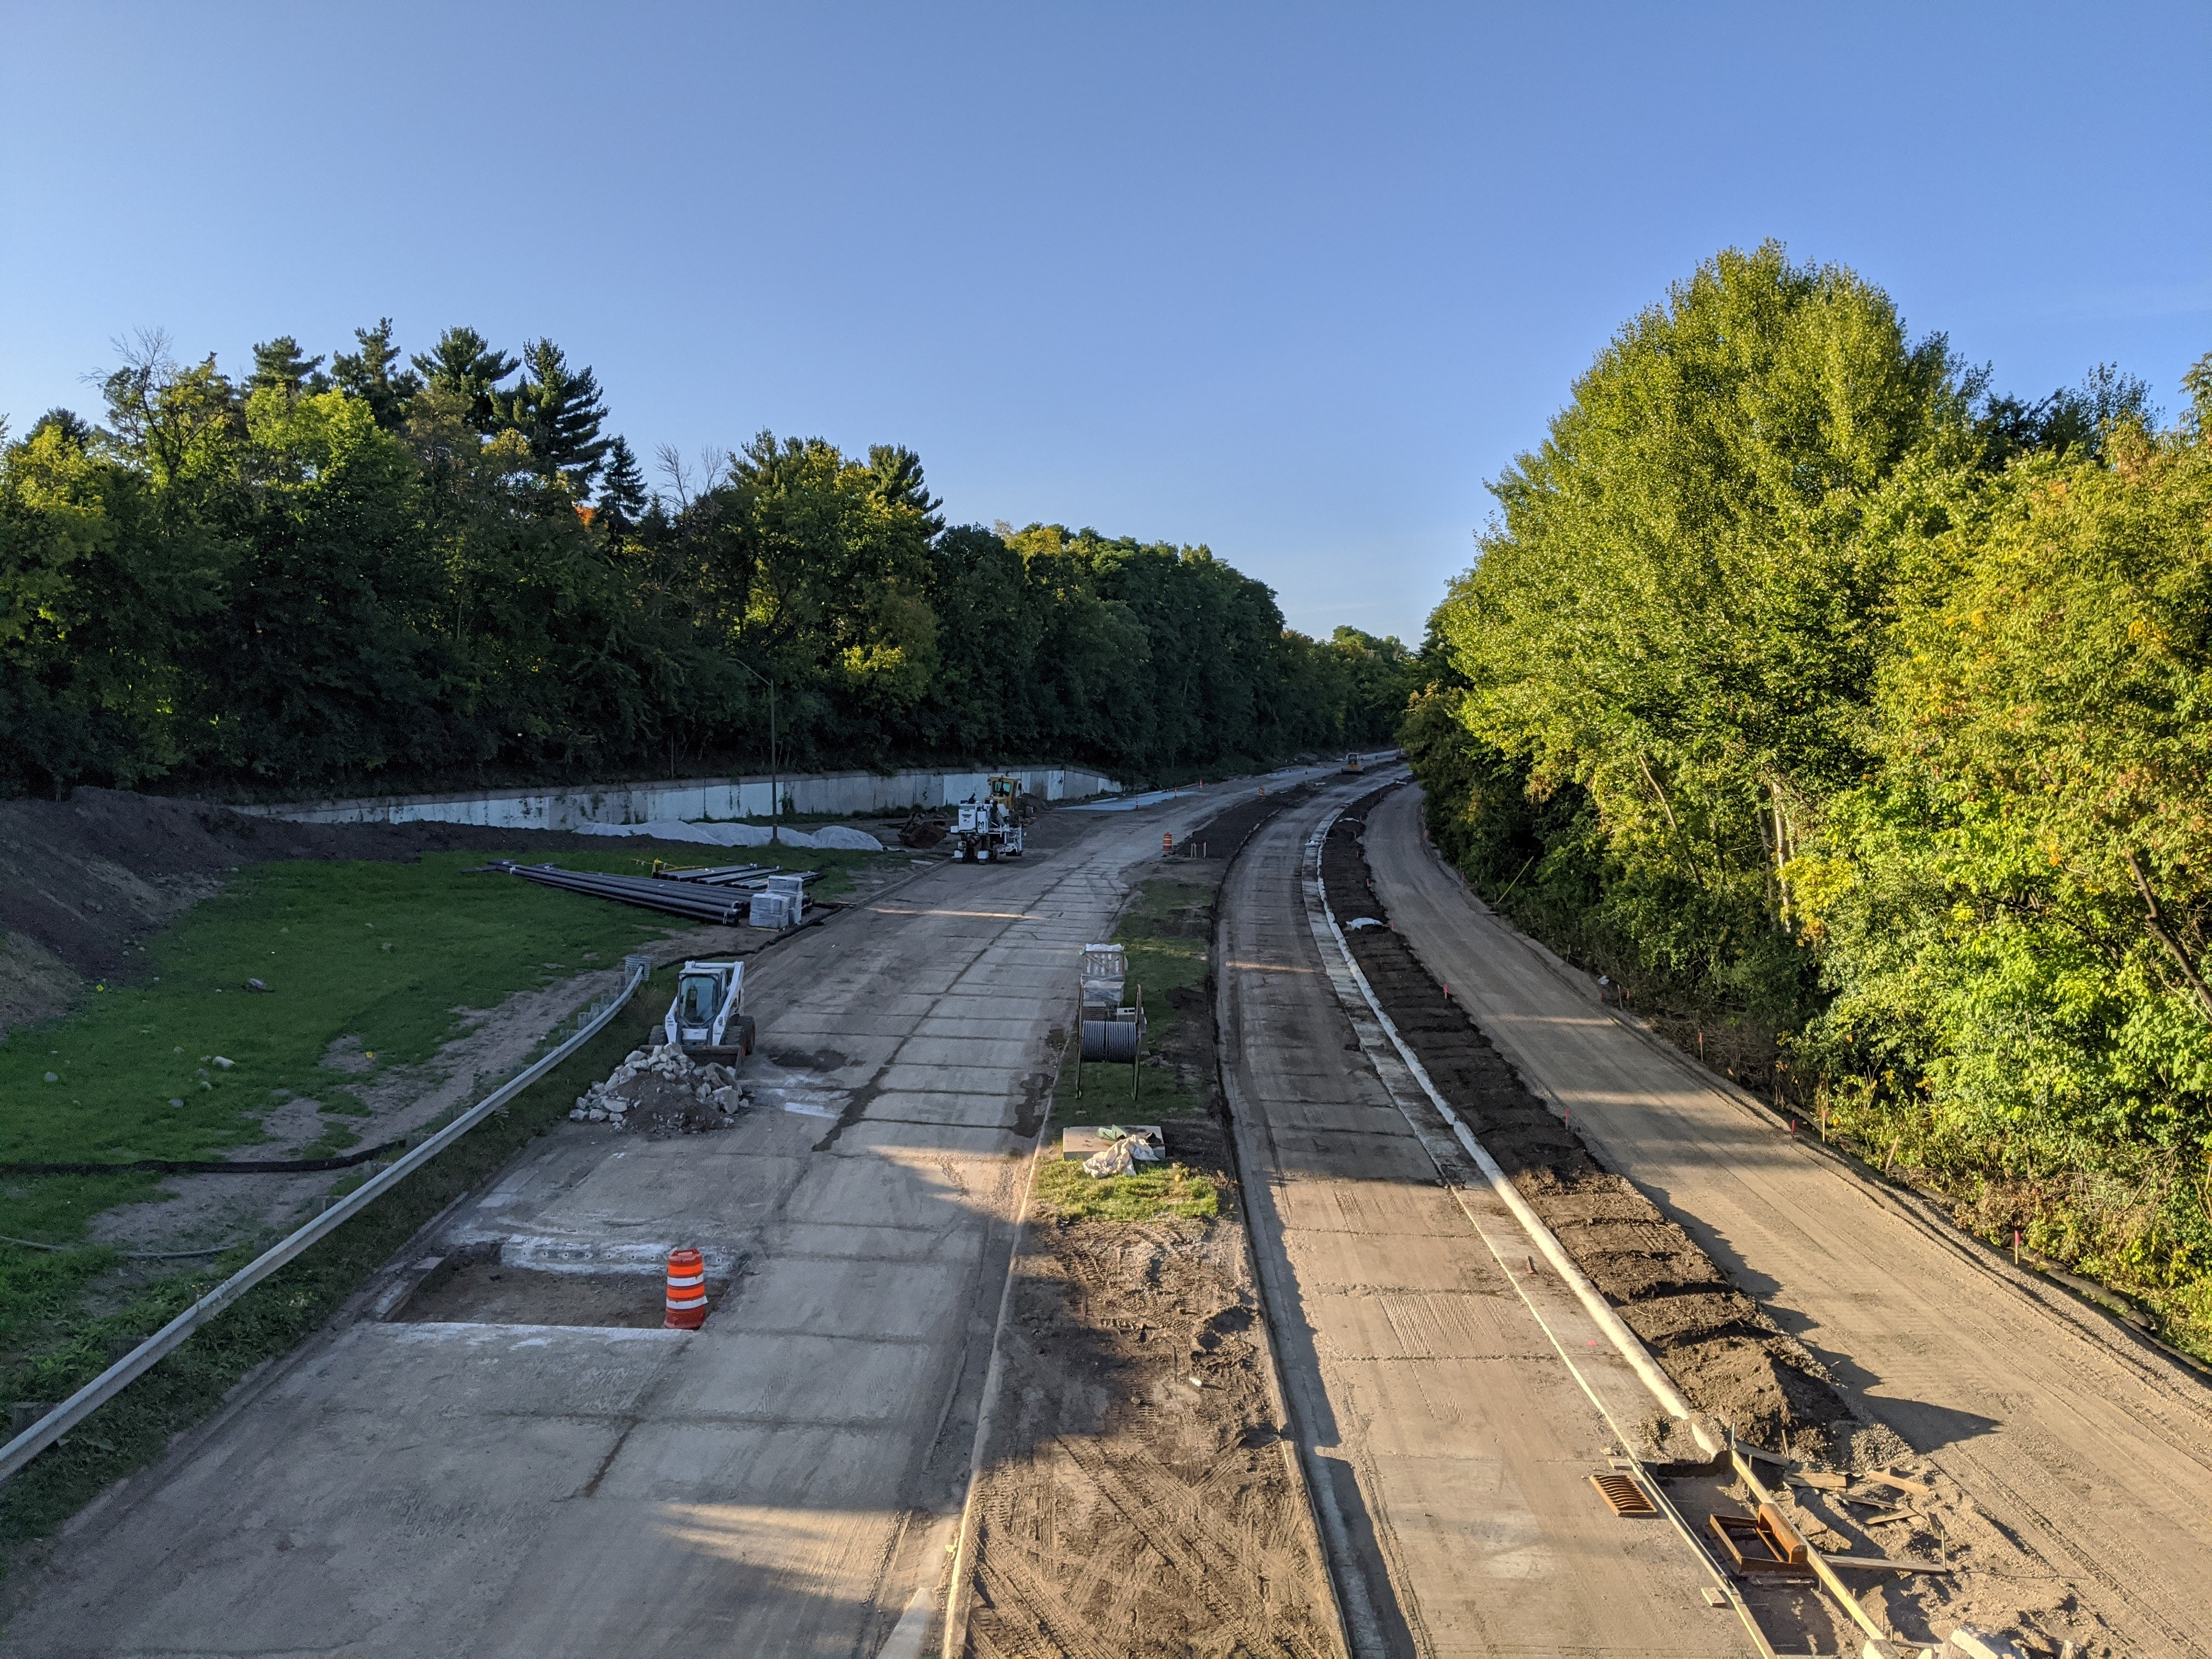 Construction photo of Ayd Mill Road from 9.18.20. Photo shows the northbound view of Ayd Mill Road taken from the St. Clair overpass.